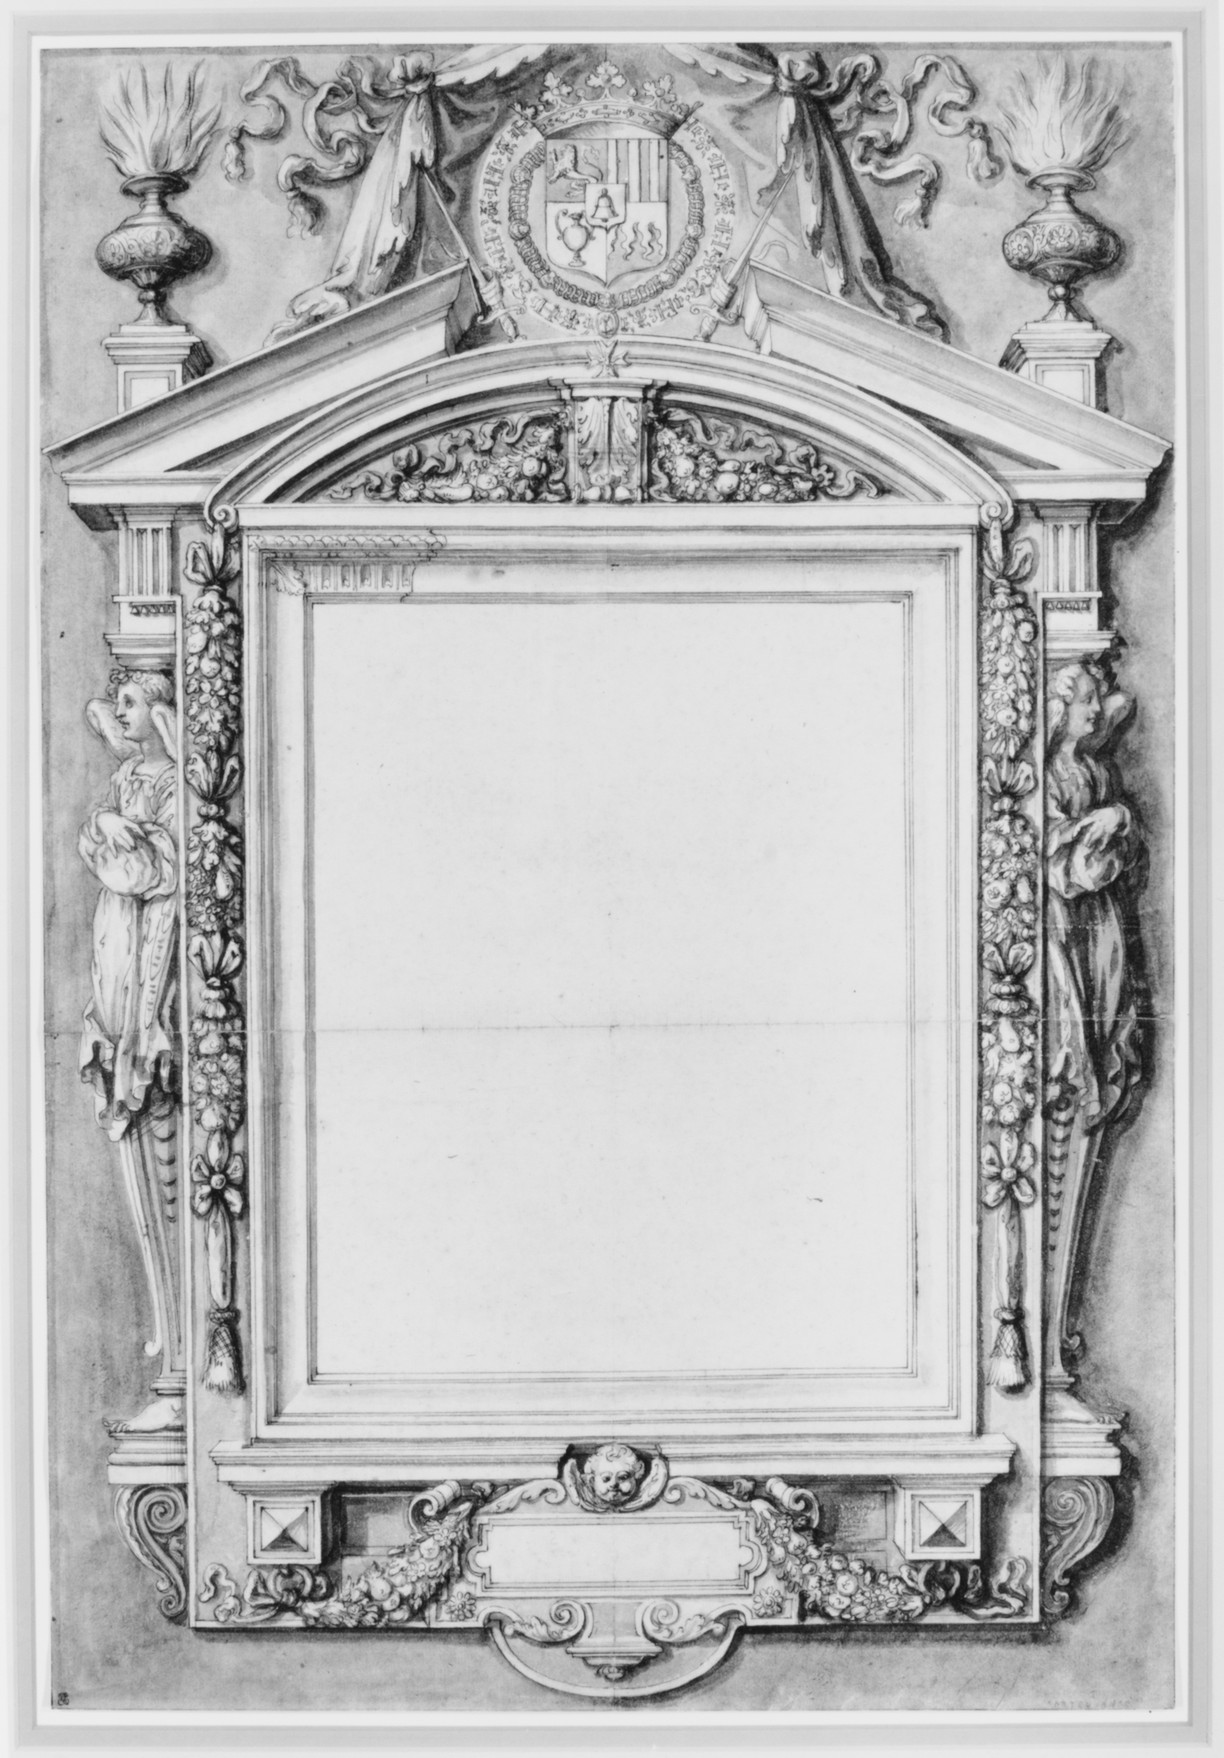 File:Design for the Frame of a Funerary Plaque with the Coat of Arms ...